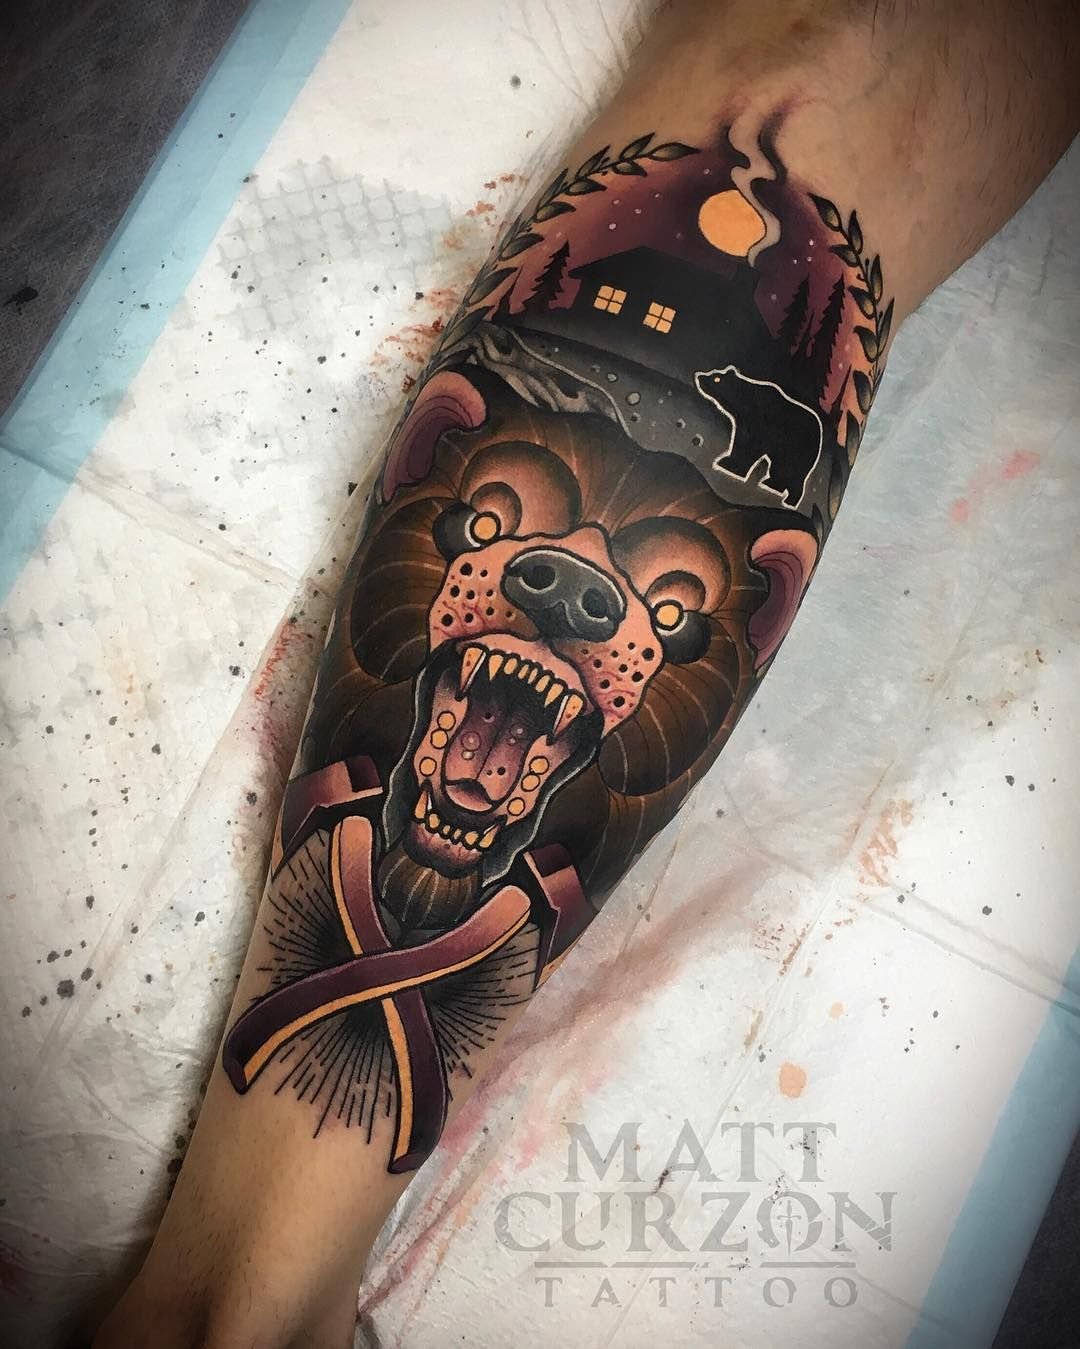 Color Tattoo By Matt From Black Sails Tattoo: Sailor Fisherman Old Man Neotraditional New School Color